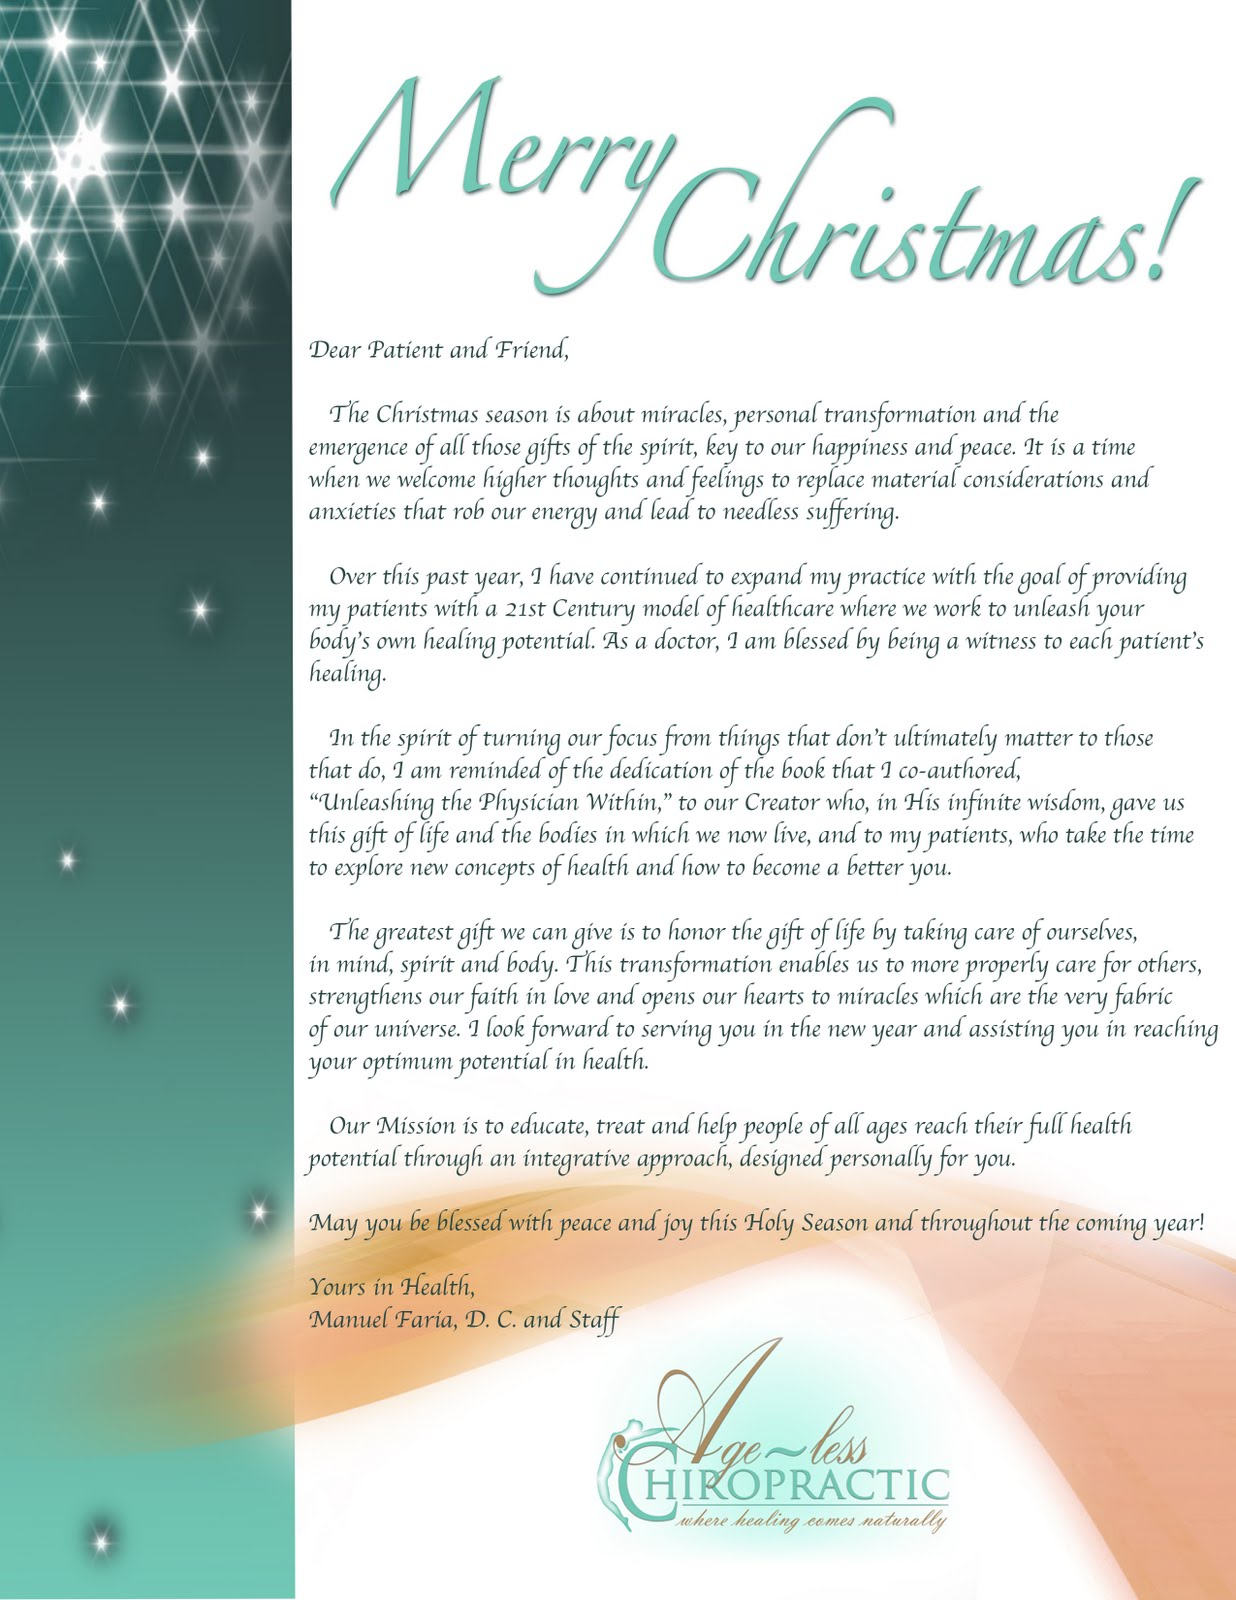 Template merry christmas letter template sample to professor a formal letter templates examples formal letter templates cheaphphosting Images